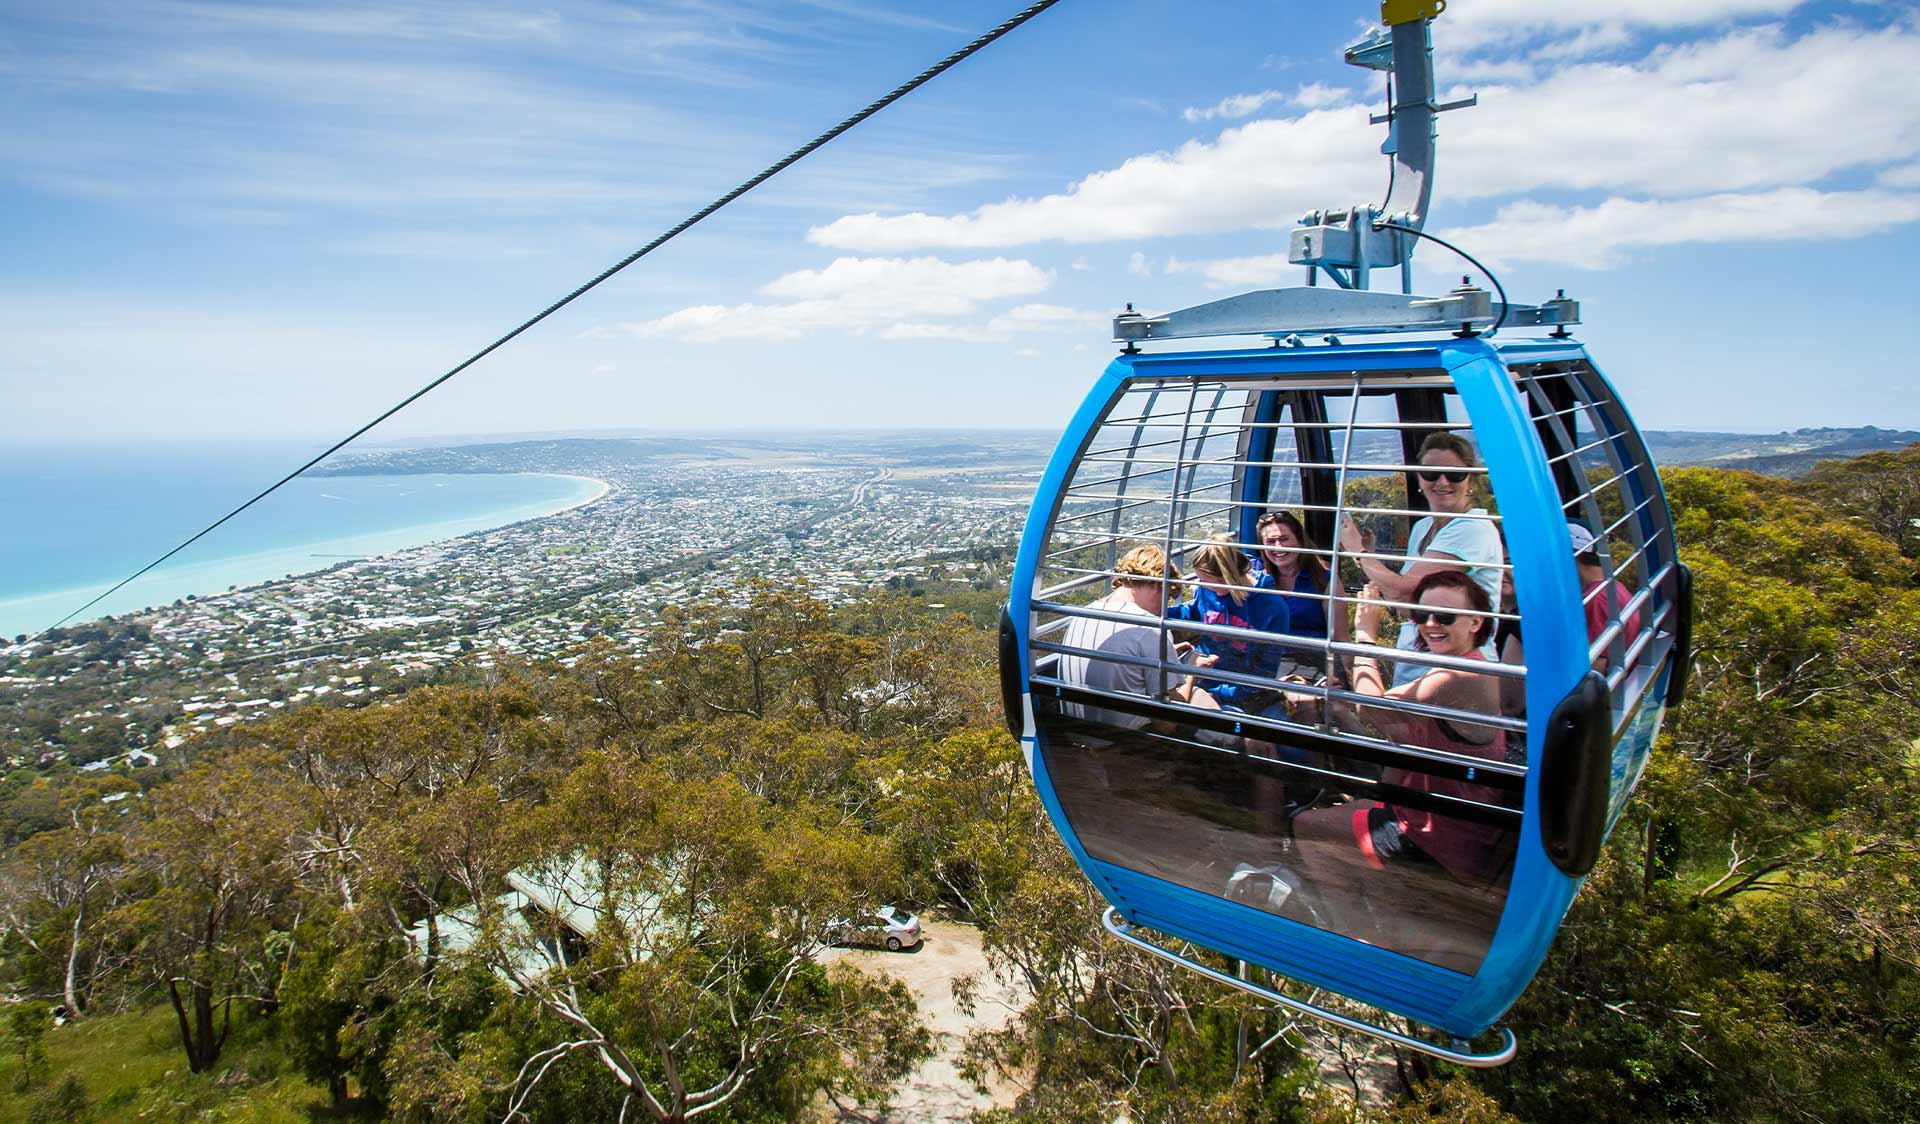 Eagle - the chairlift / gondola takes visitors to the top of Arthurs Seat State Park.